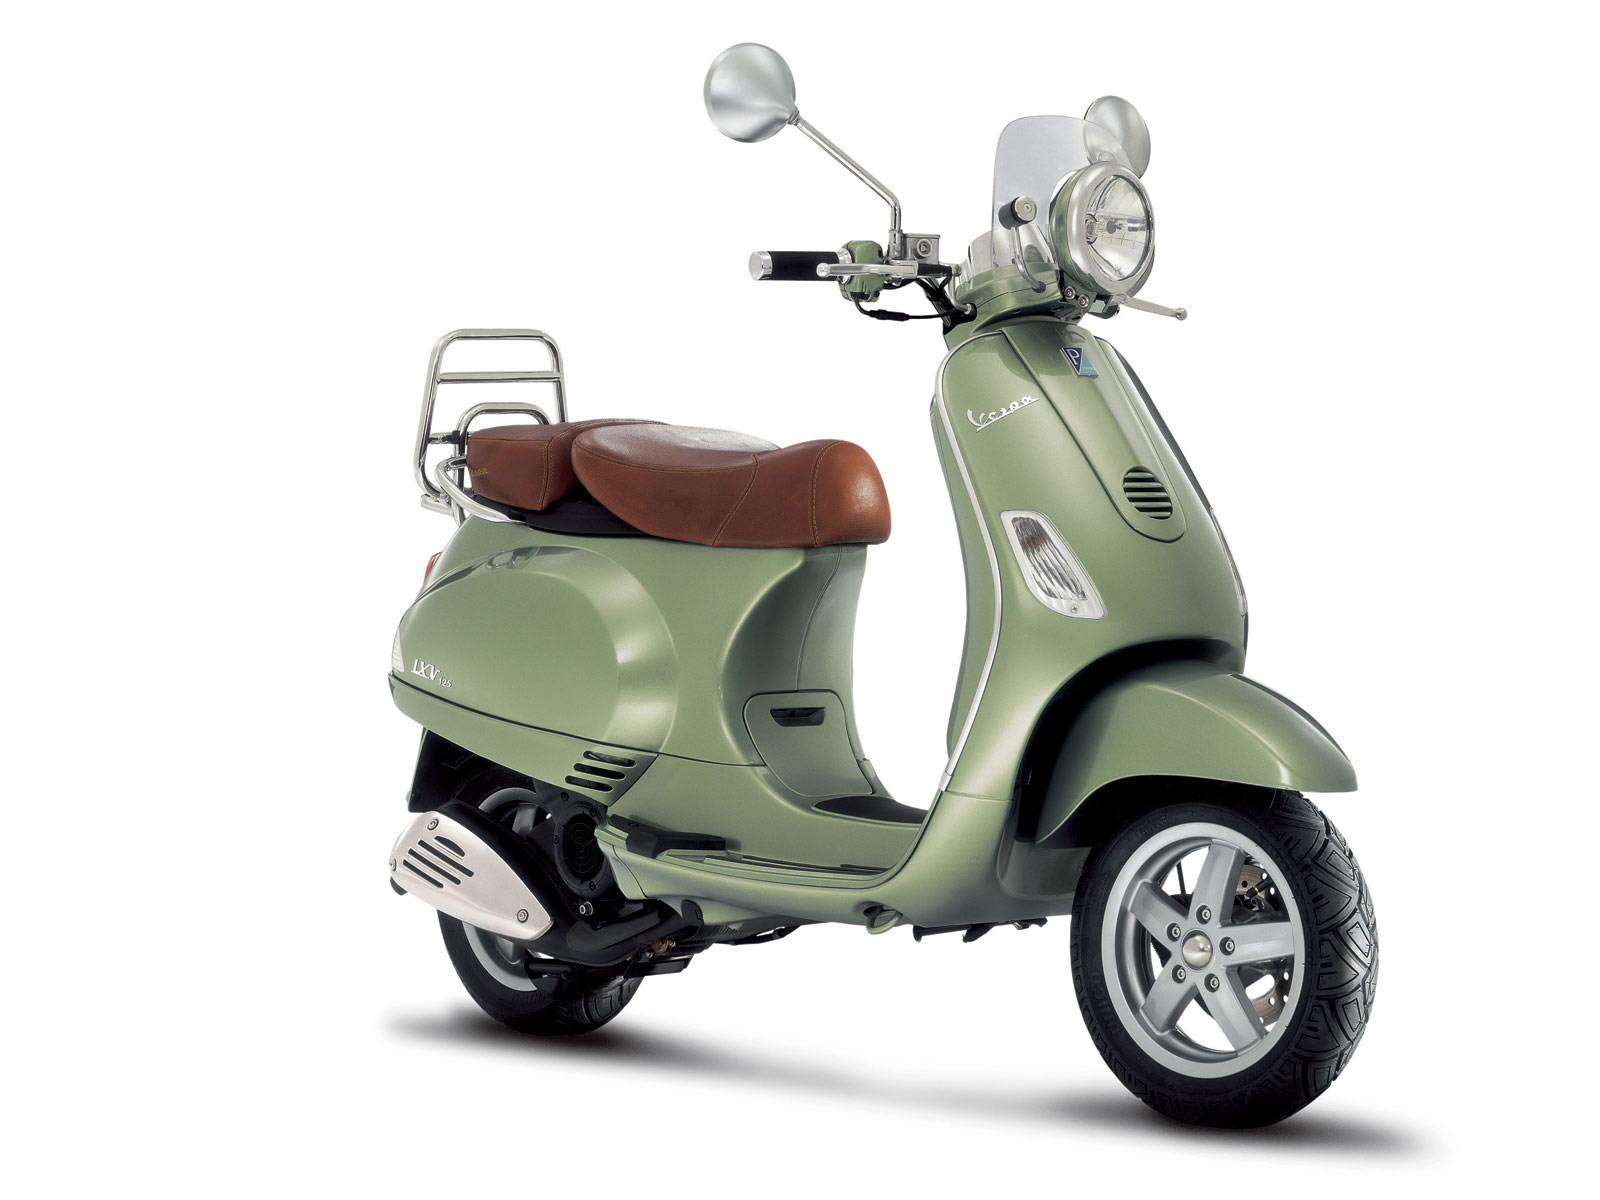 Vespa lxv photo - 5